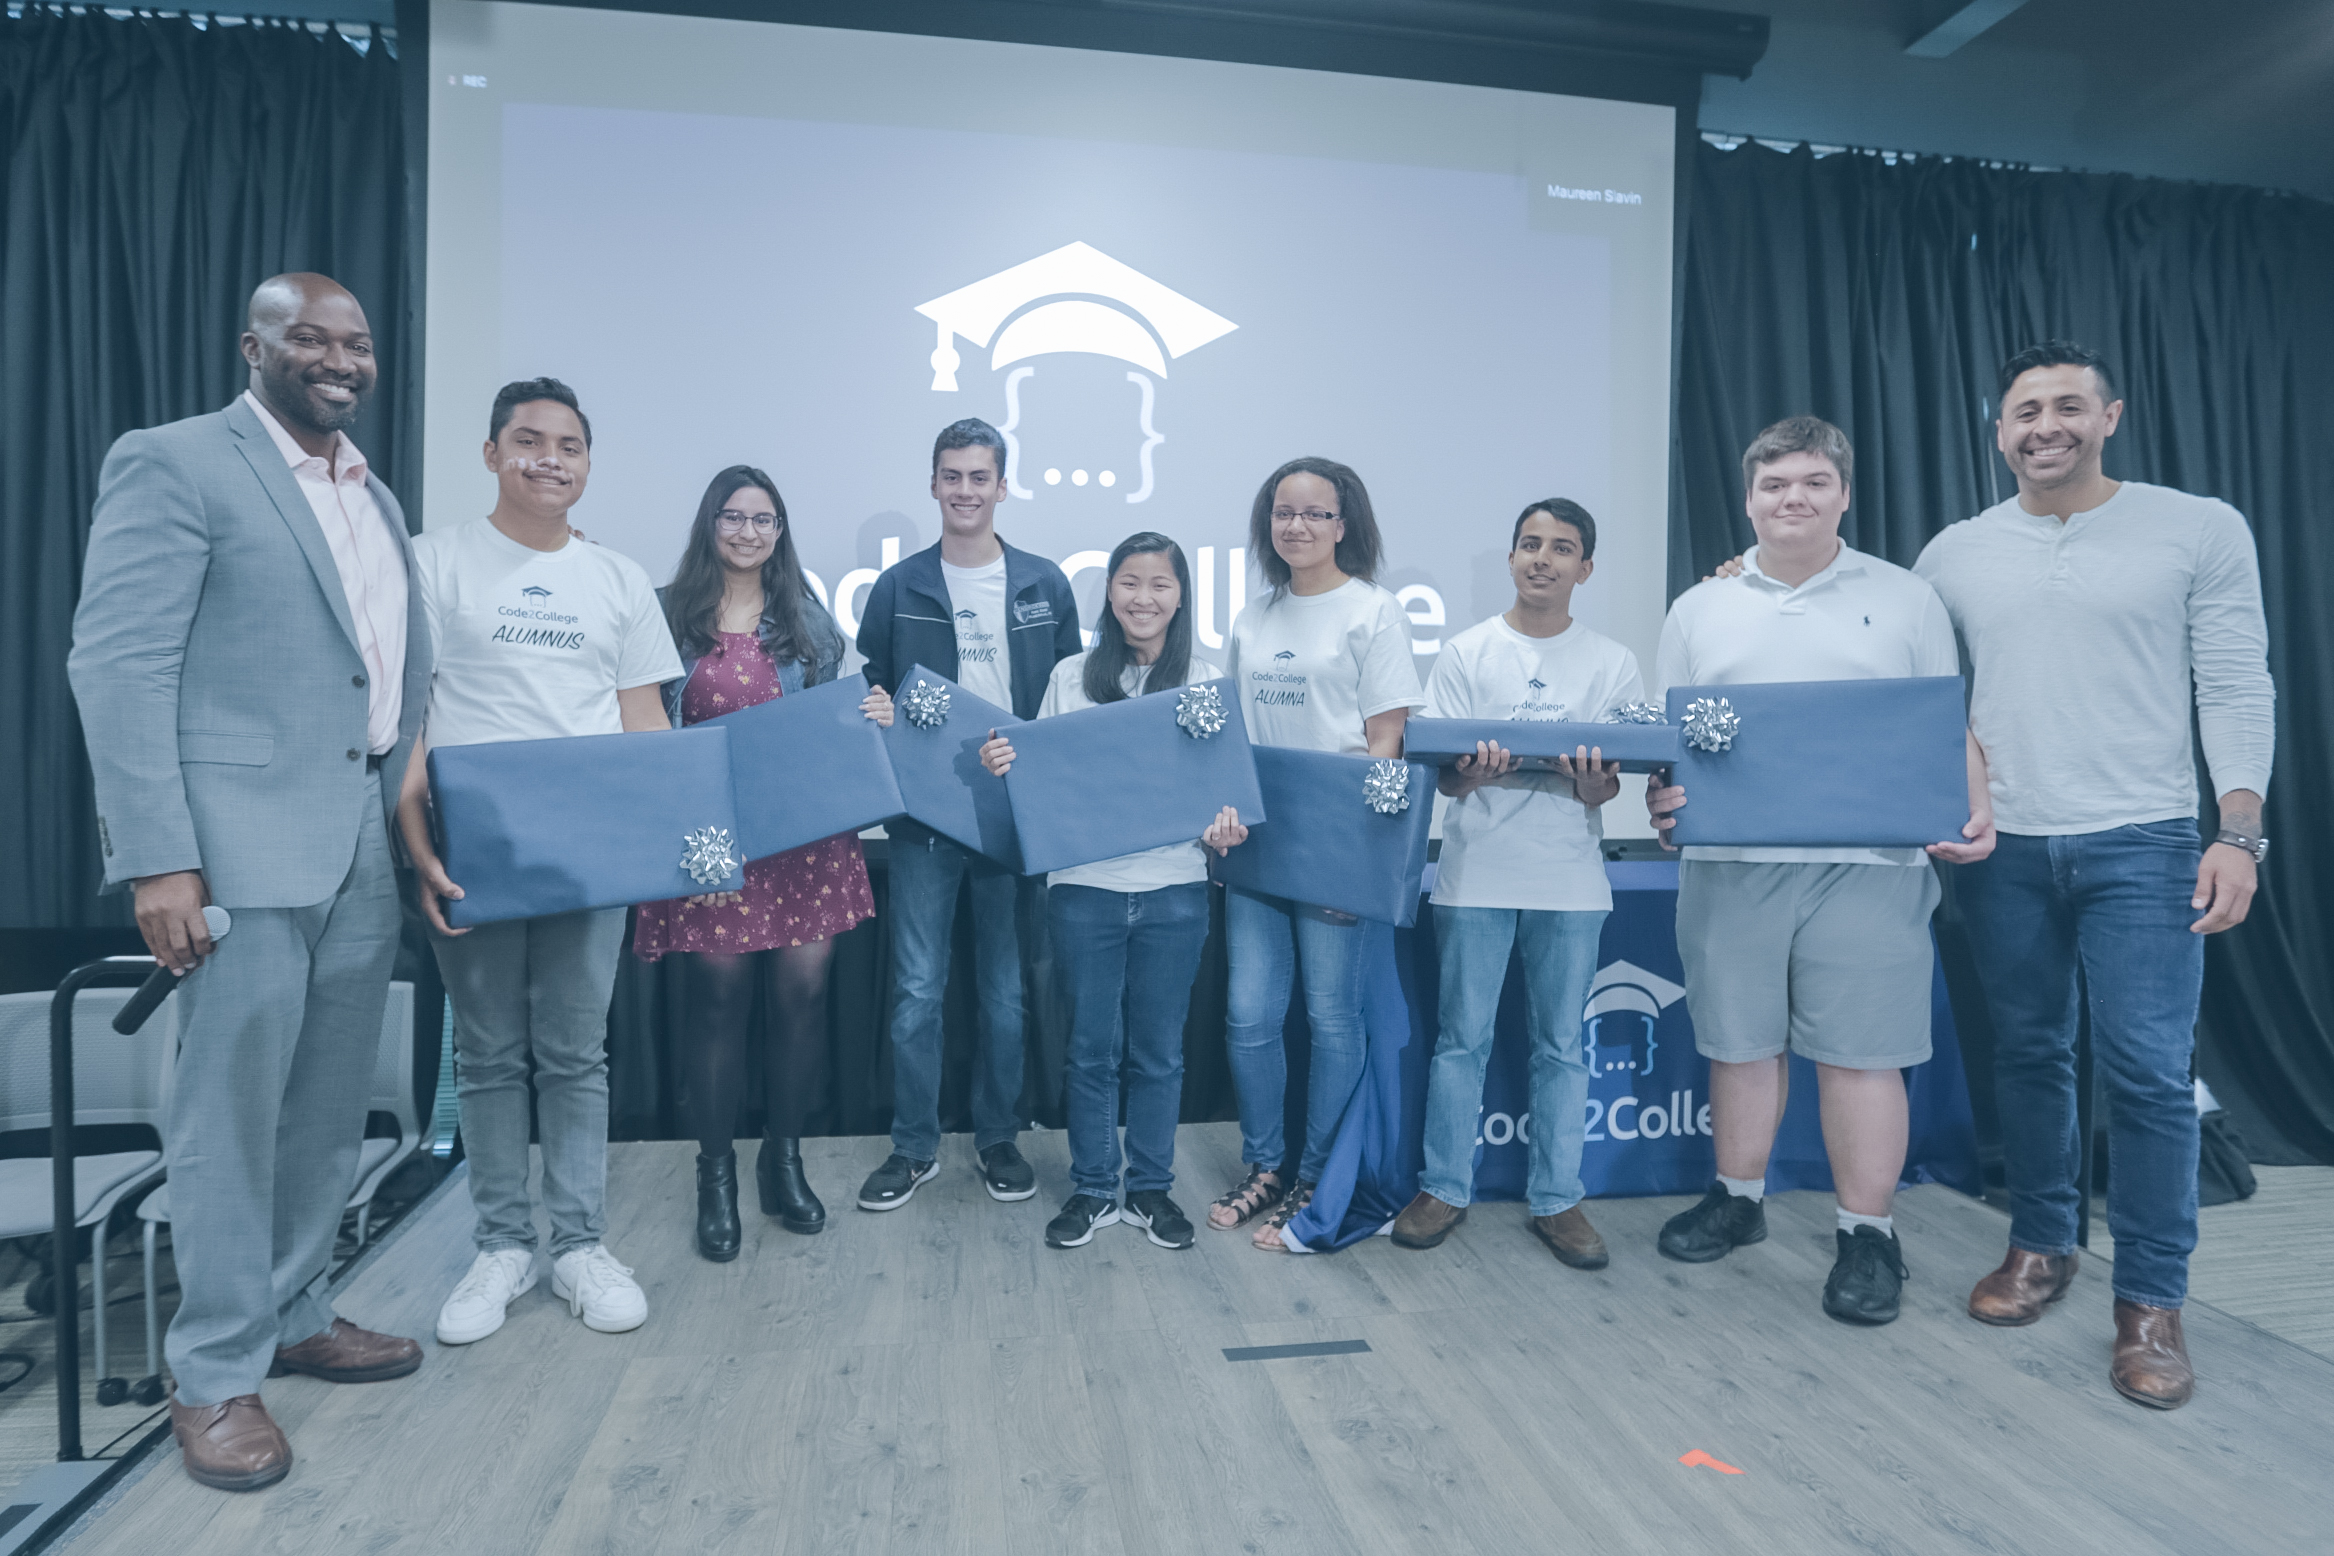 Code2College 2019 Graduation where Daniel Lucio, Government and Community Affairs Manager at Google Fiber, took the stage with Matt to announce that Google Fiber donated a brand new laptop to all of the graduating seniors from Code2College!